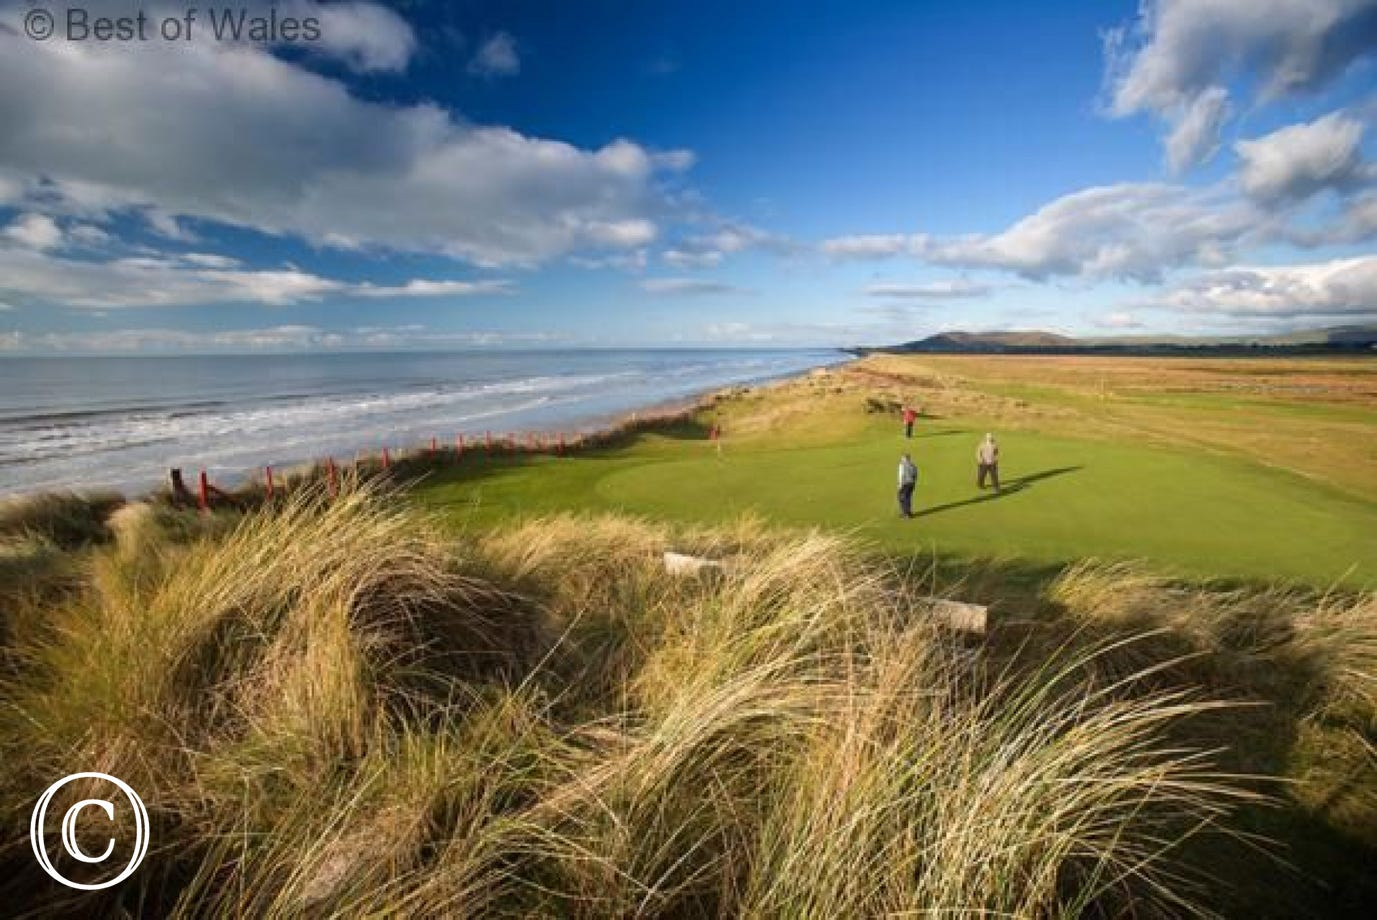 Enjoy a round of golf by the sea on Aberdyfi's 18 hole golf course